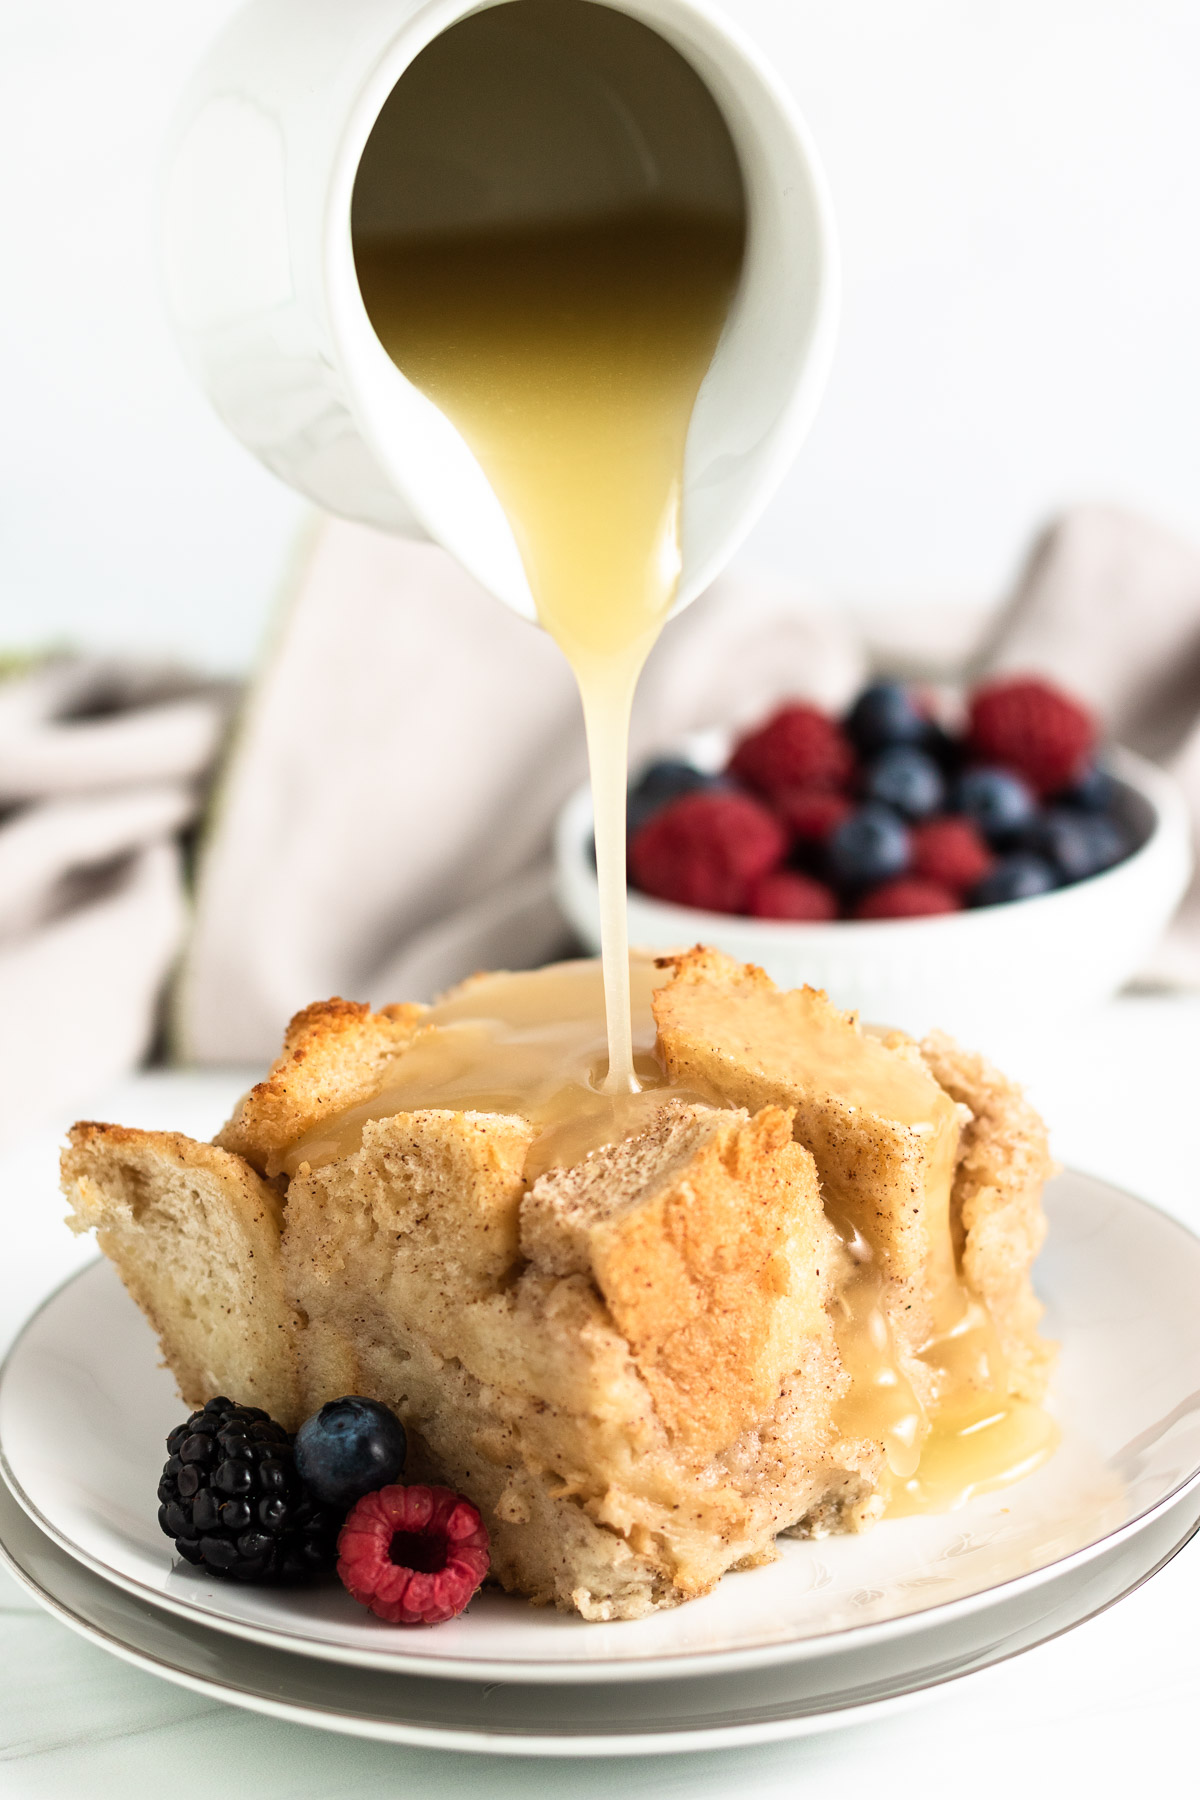 Rum sauce being poured on a plate of bread pudding.